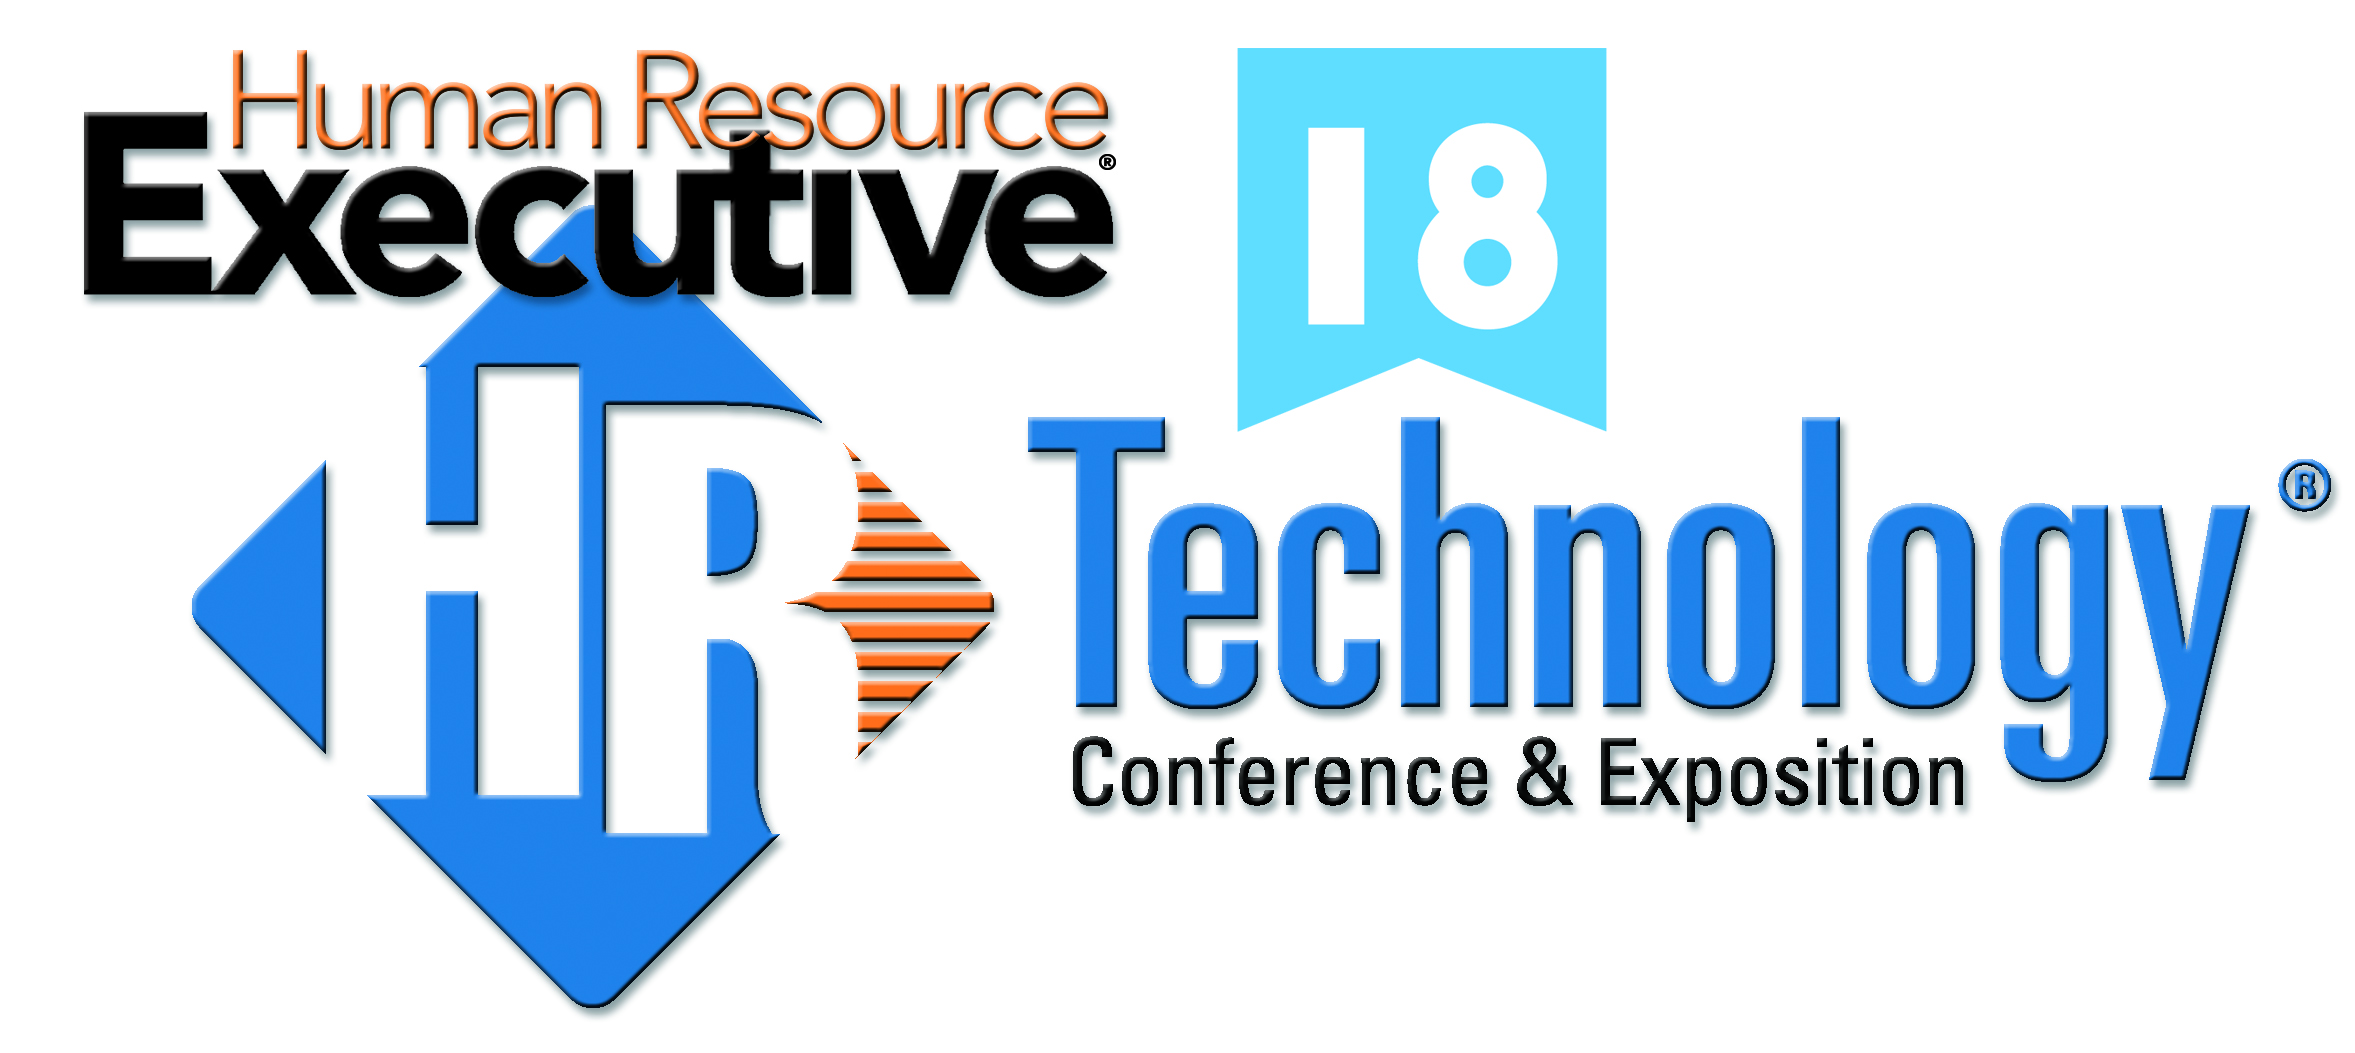 hrt_18th_annual_logo